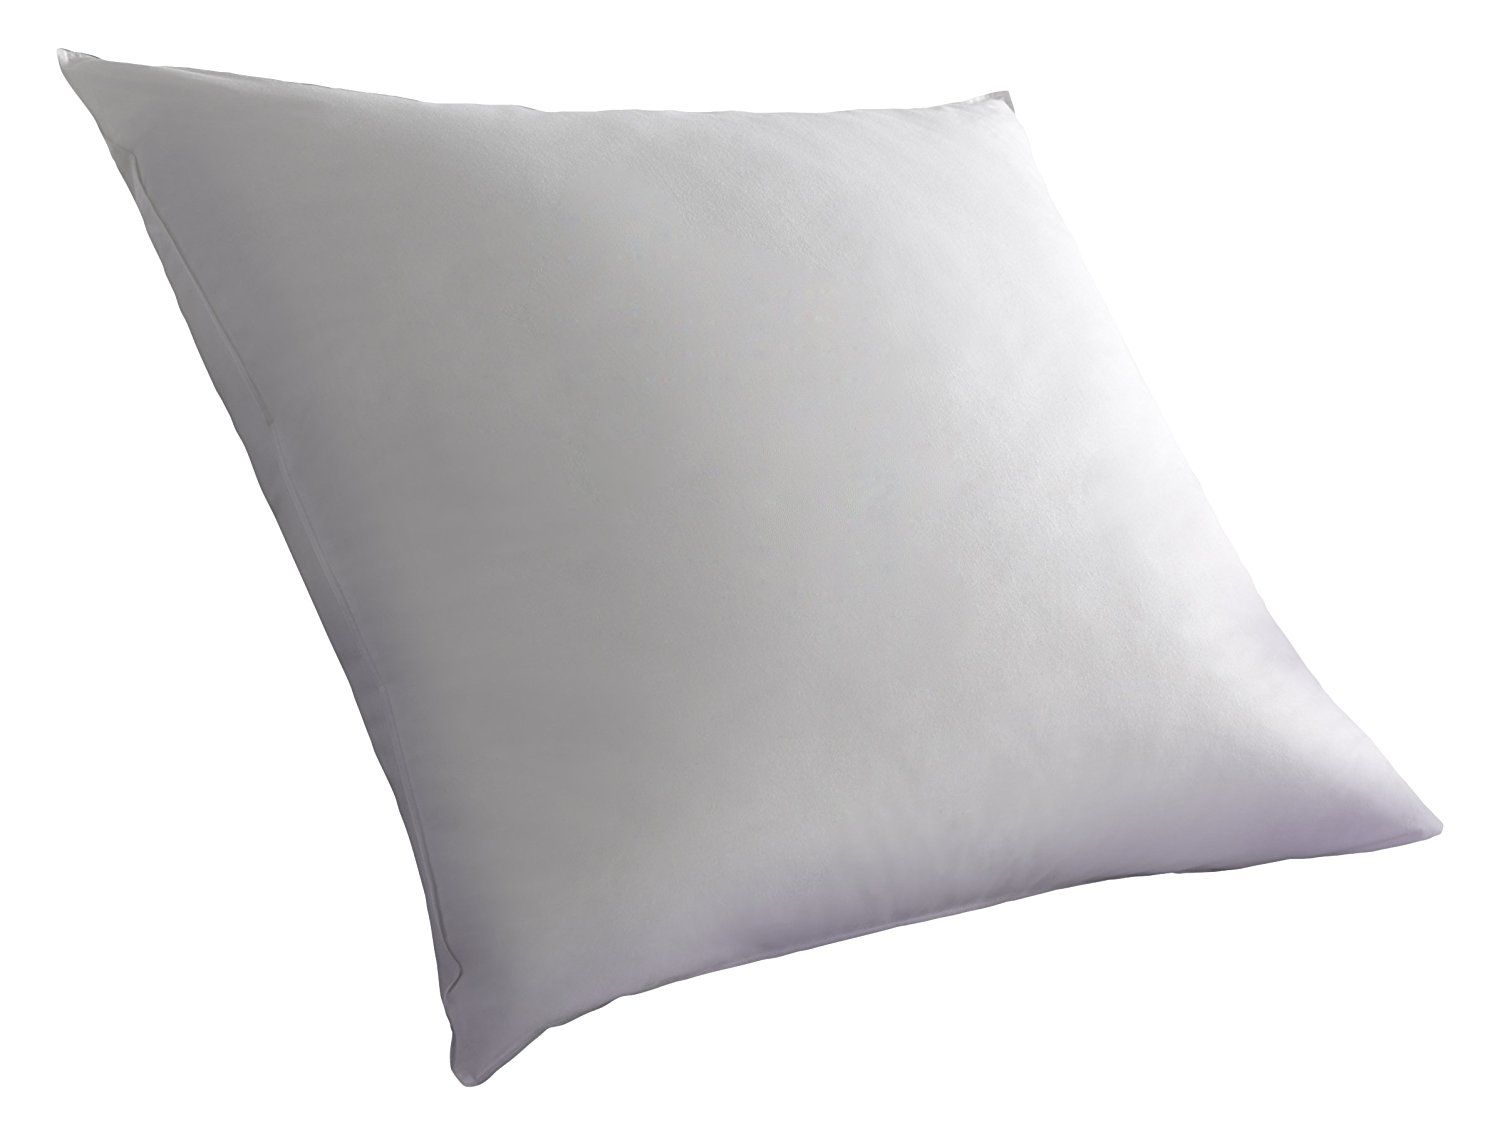 26X26 Pillow Insert Pacific Coast Feather Company 25988 Euro Square Feather Pillow